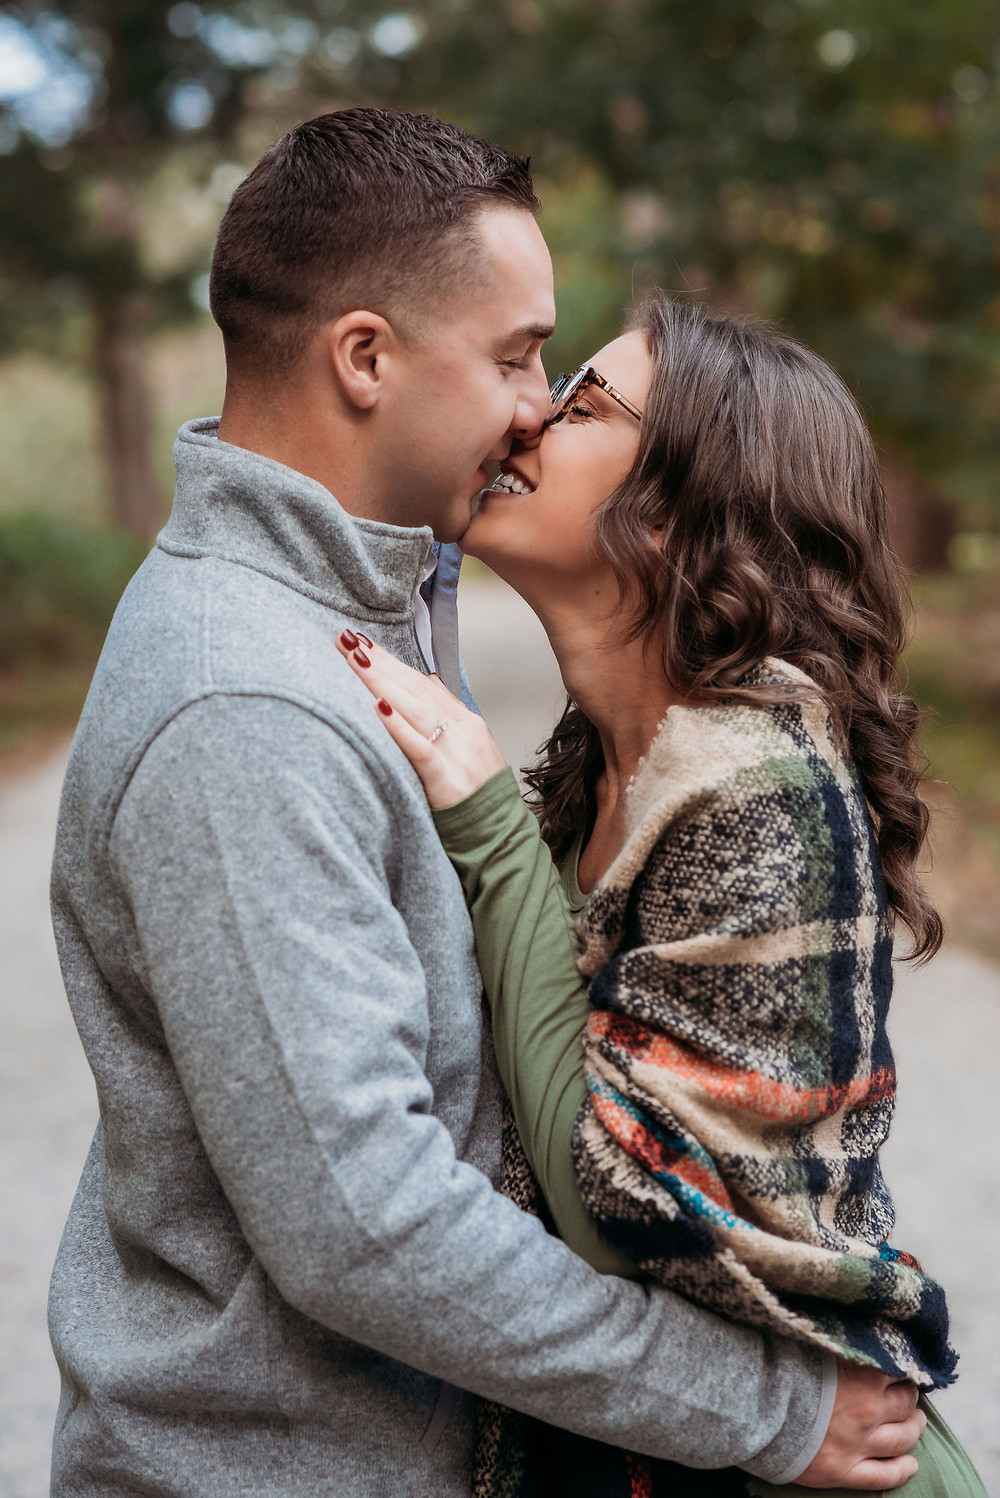 guy and girl stand with their heads very close together, big smiles, almost kissing